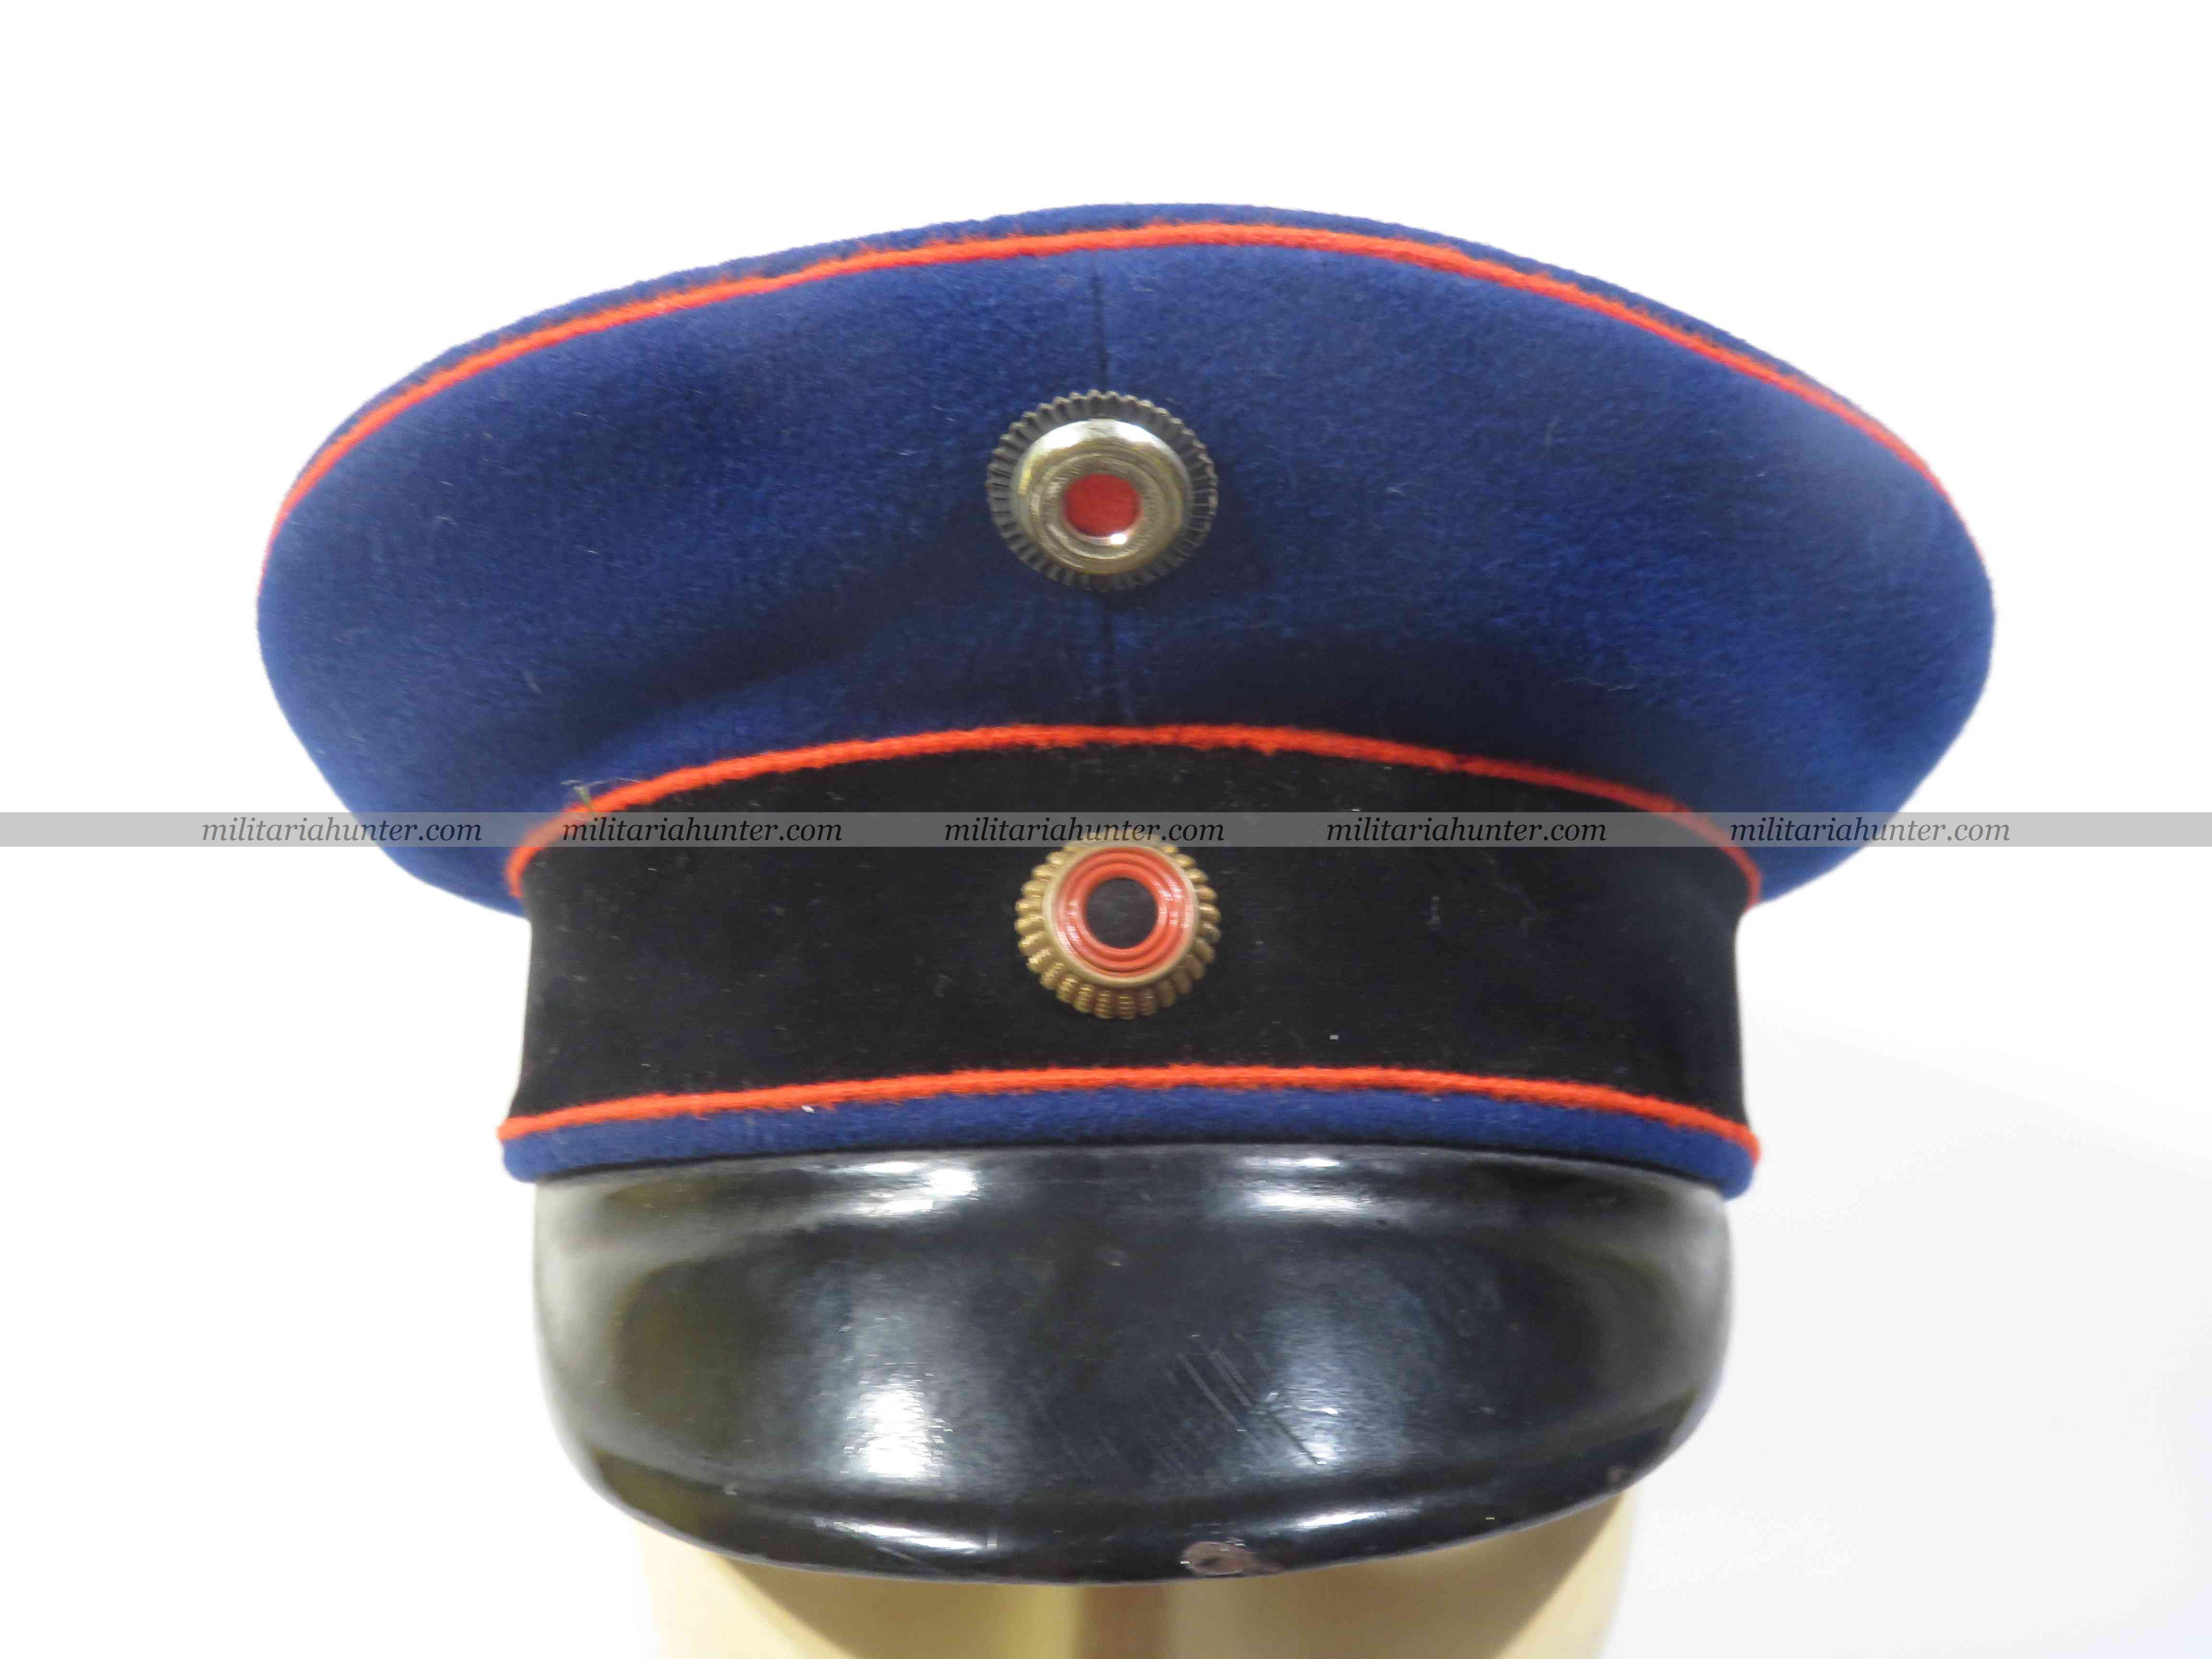 Militaria Hunter - Vente Militaria ww1 ww2 pre war Reuss or Waldeck officer visor cap - Offizier Schirmmütze